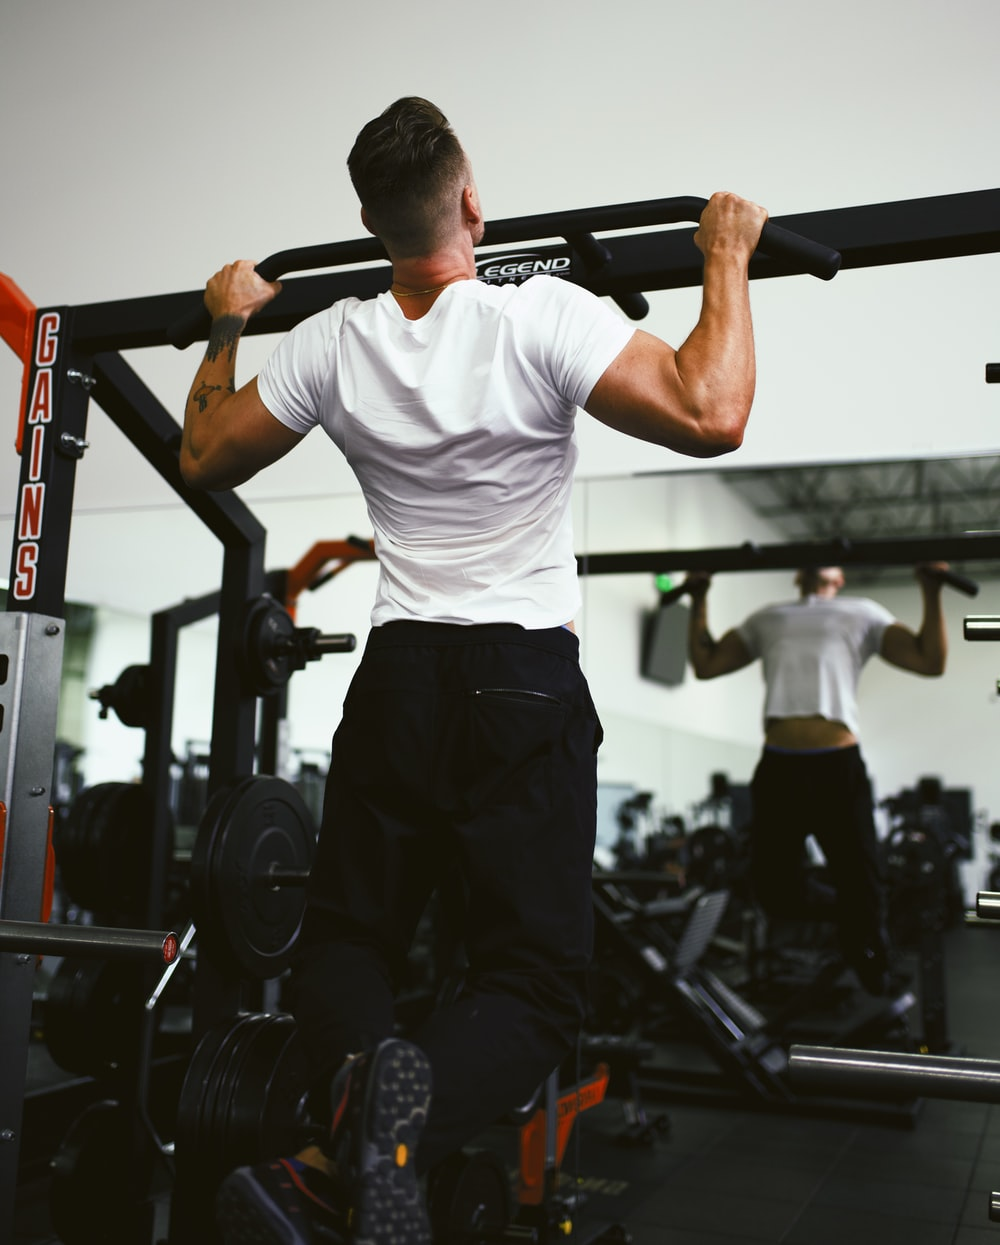 man in white crew neck t-shirt and black pants holding black exercise equipment